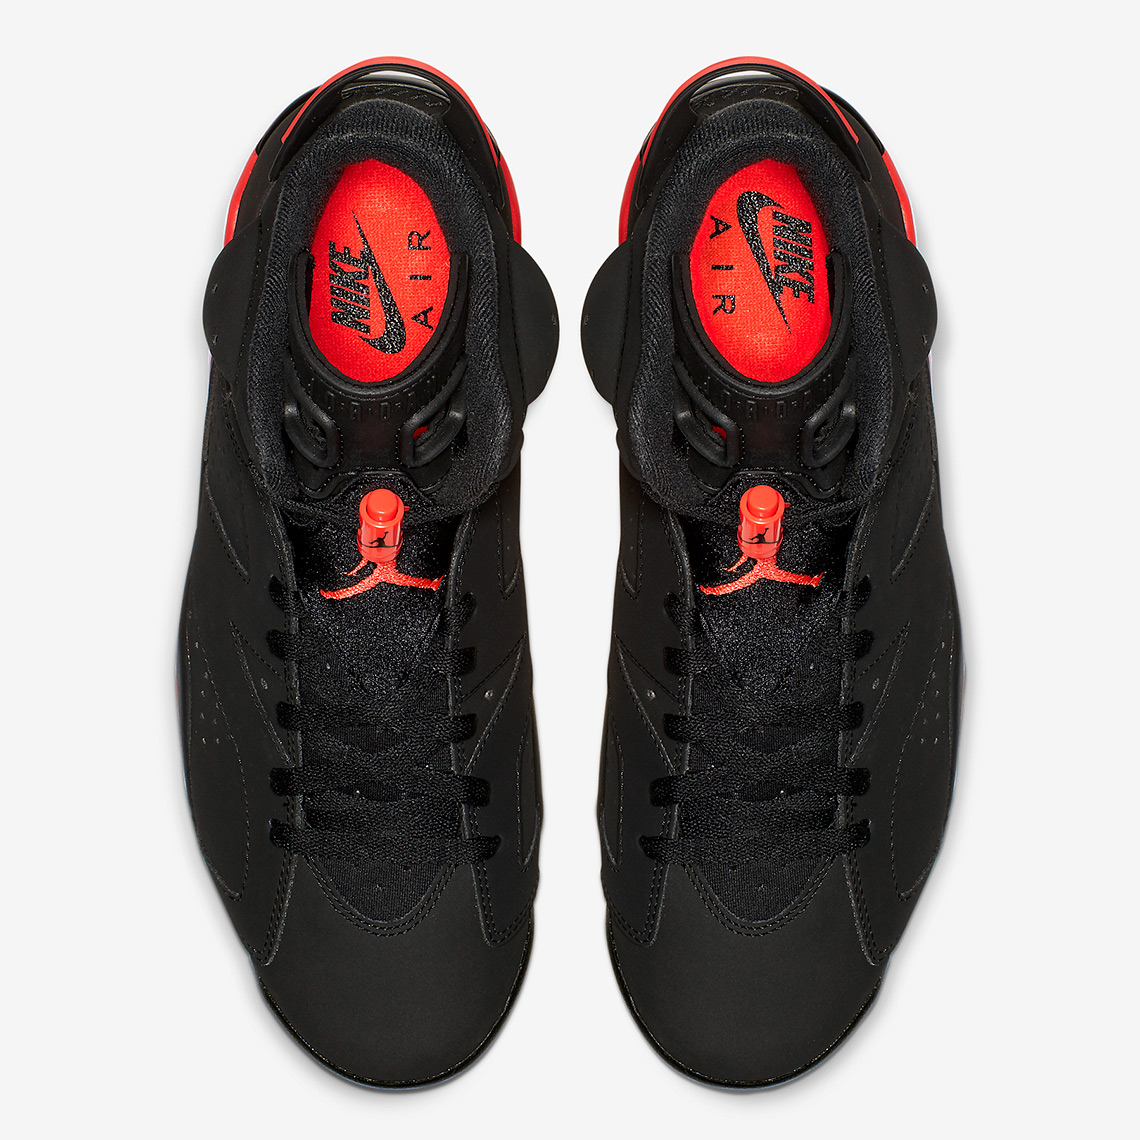 2bfda289315c54 Where to Buy the Nike Air-Branded